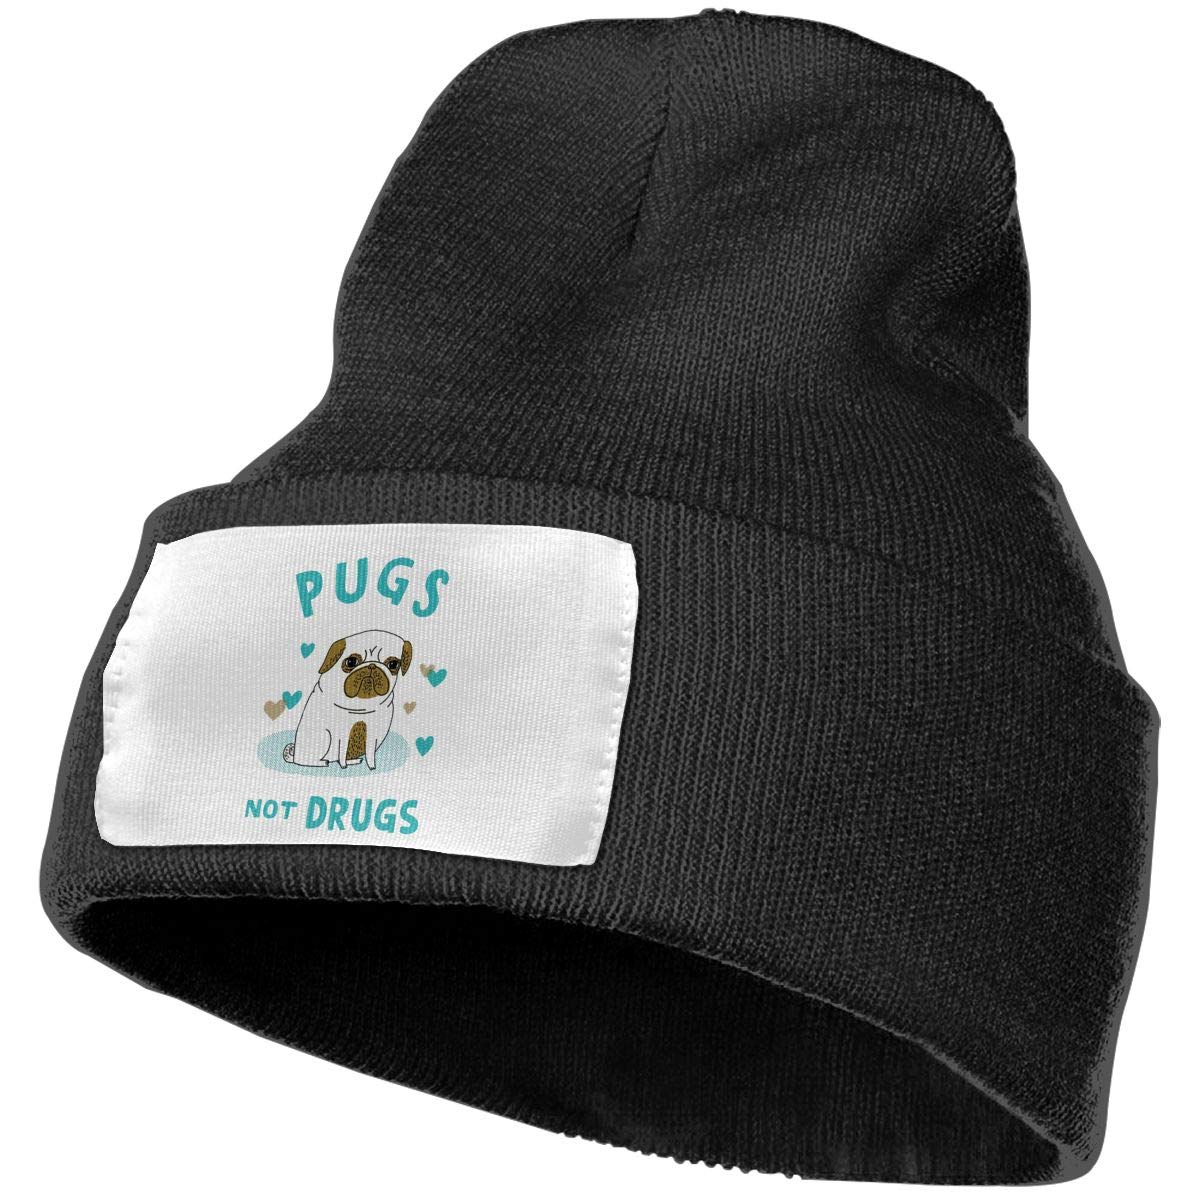 Pugs Not Drugs Cute Pug Wool Hat Women//Men Soft Stretch Knit Beanie Hat Winter Warm Skull Cap